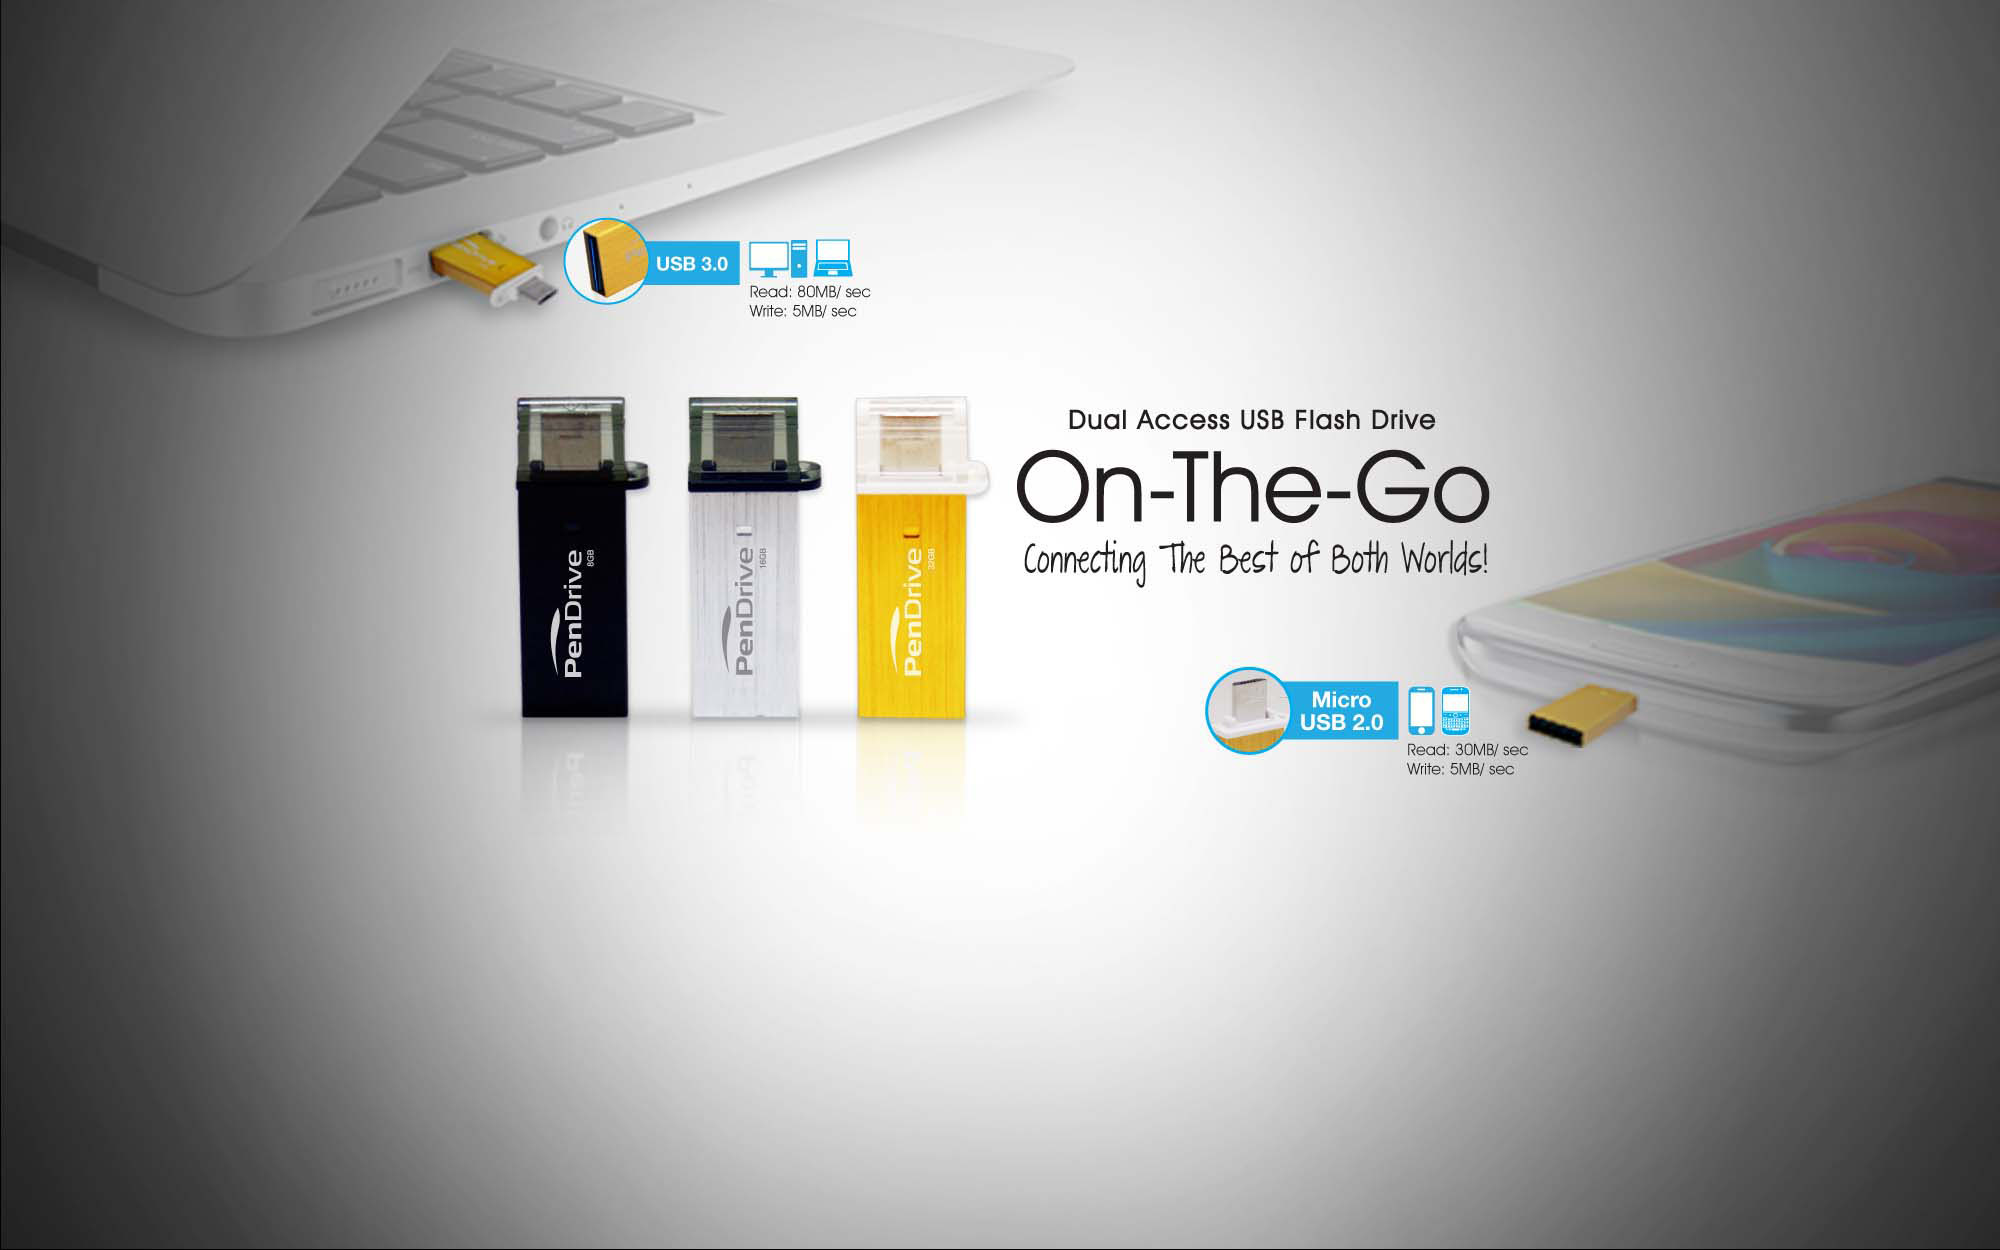 PenDrive On The Go